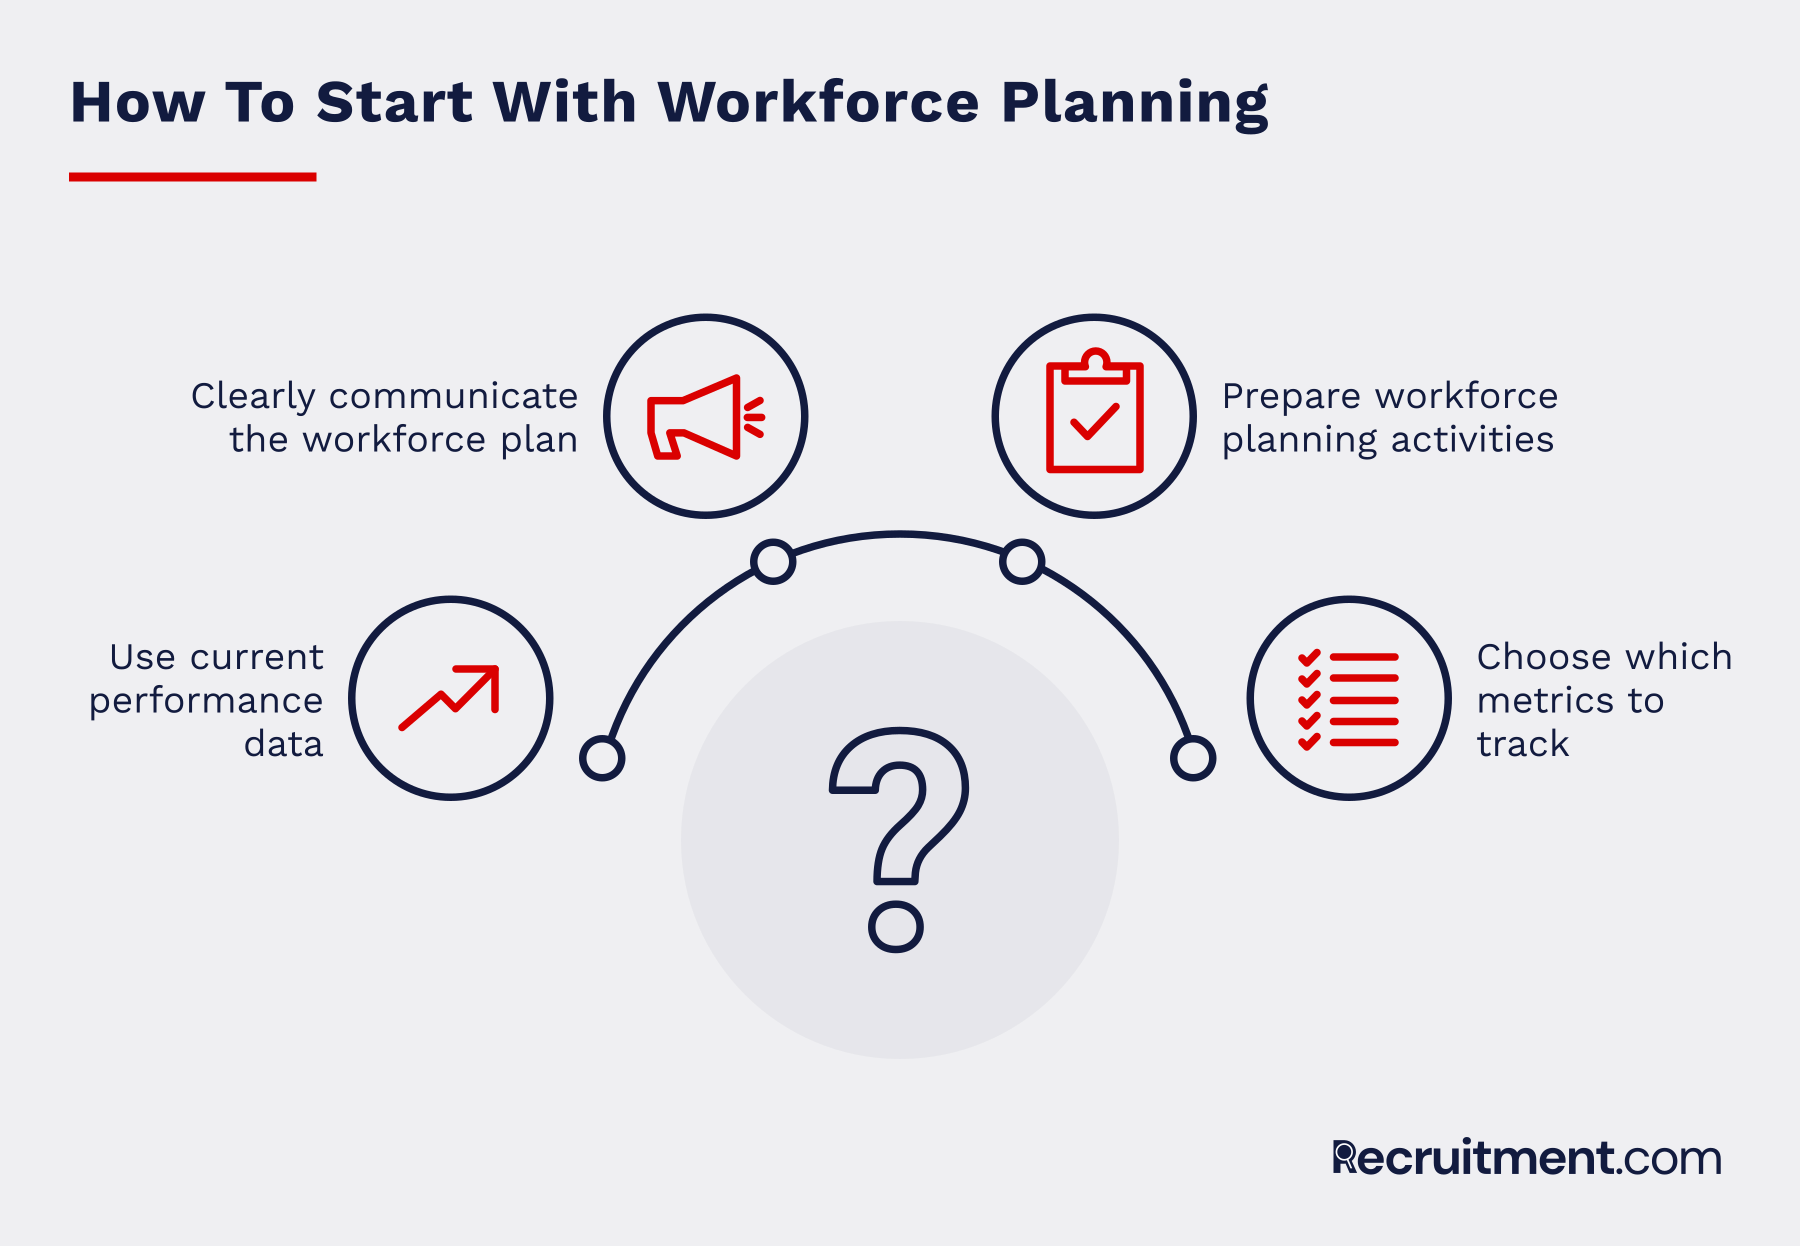 Workforce planning key questions